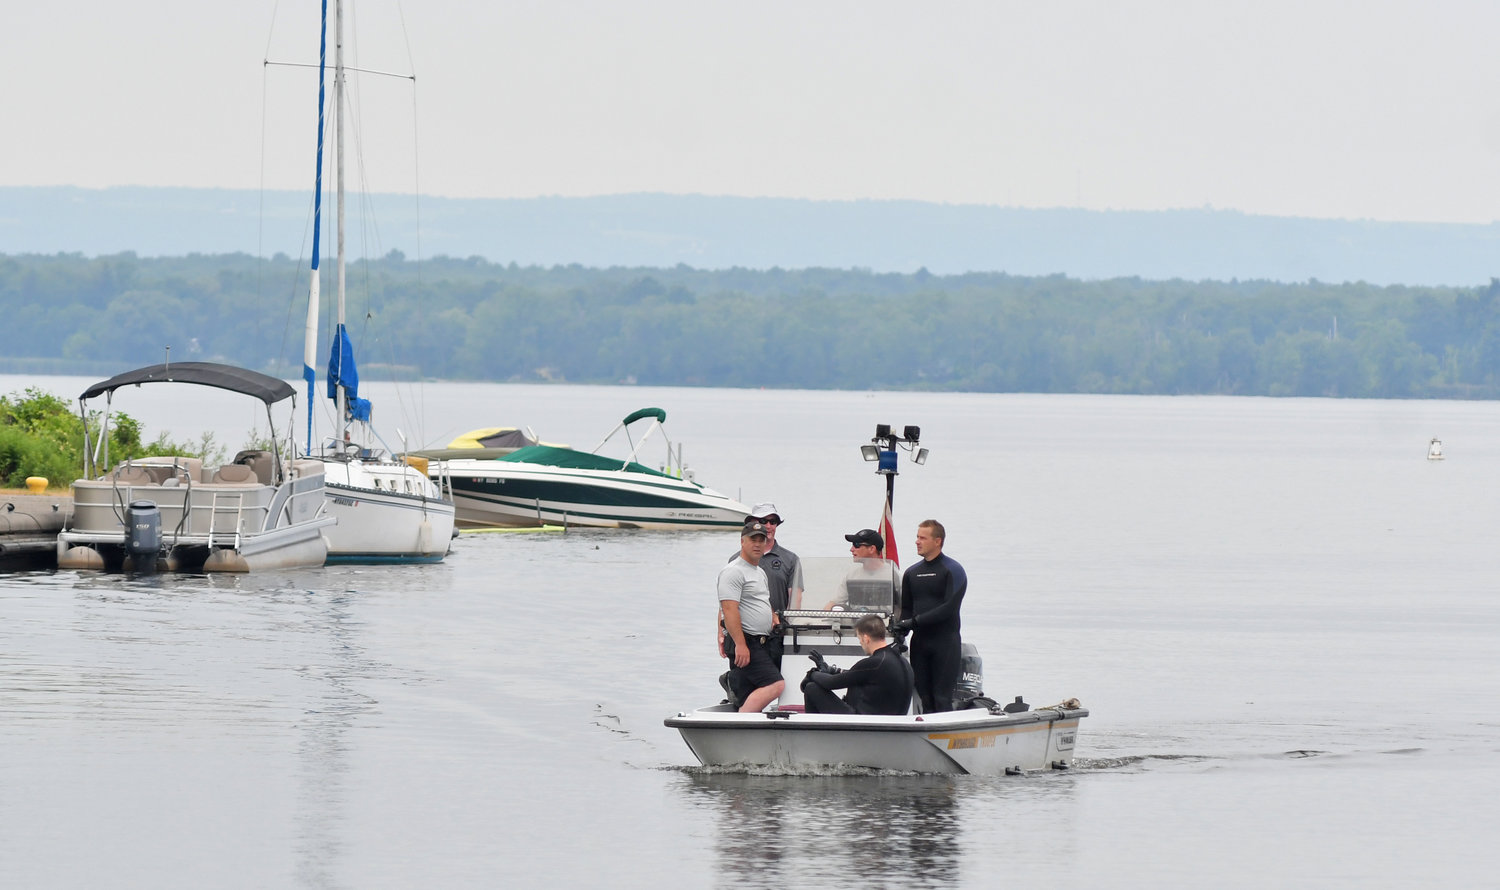 MISSING — Divers from State Police Troop D in Oneida return to dock in Sylvan Beach after searching for a missing diver Saturday morning.  The swimmer was reported missing early Friday evening after they went swimming off a boat, went under water and didn't come back up, according to law enforcement.